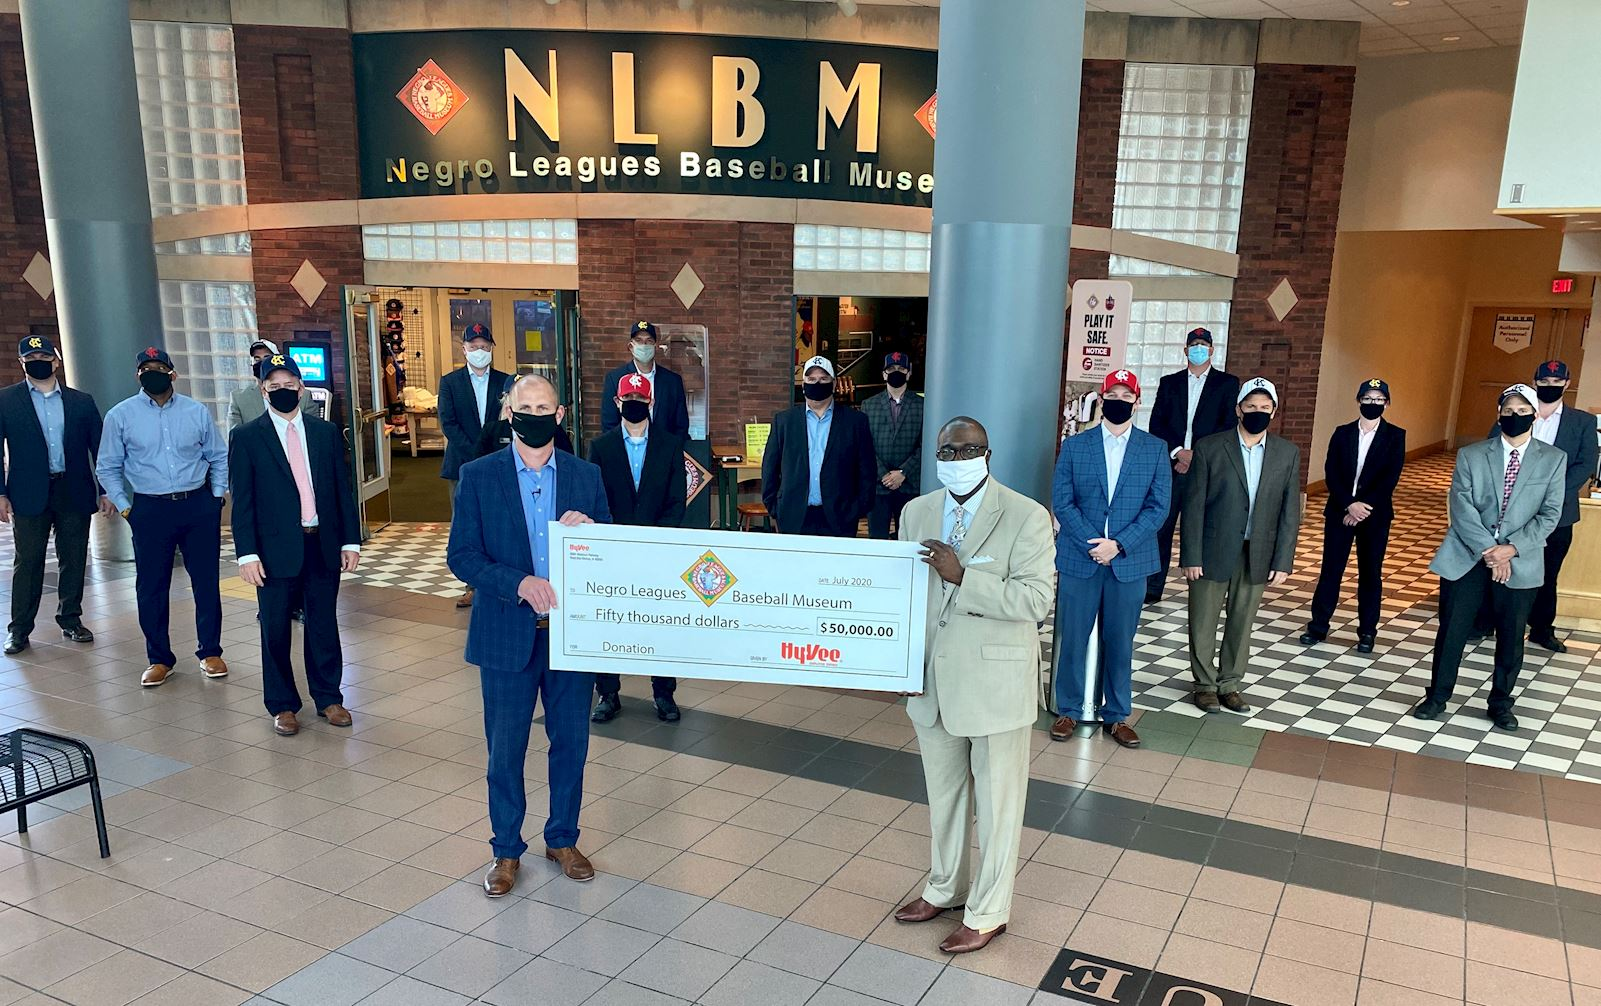 Hy-Vee Announces $50,000 Donation to the Negro Leagues Baseball Museum